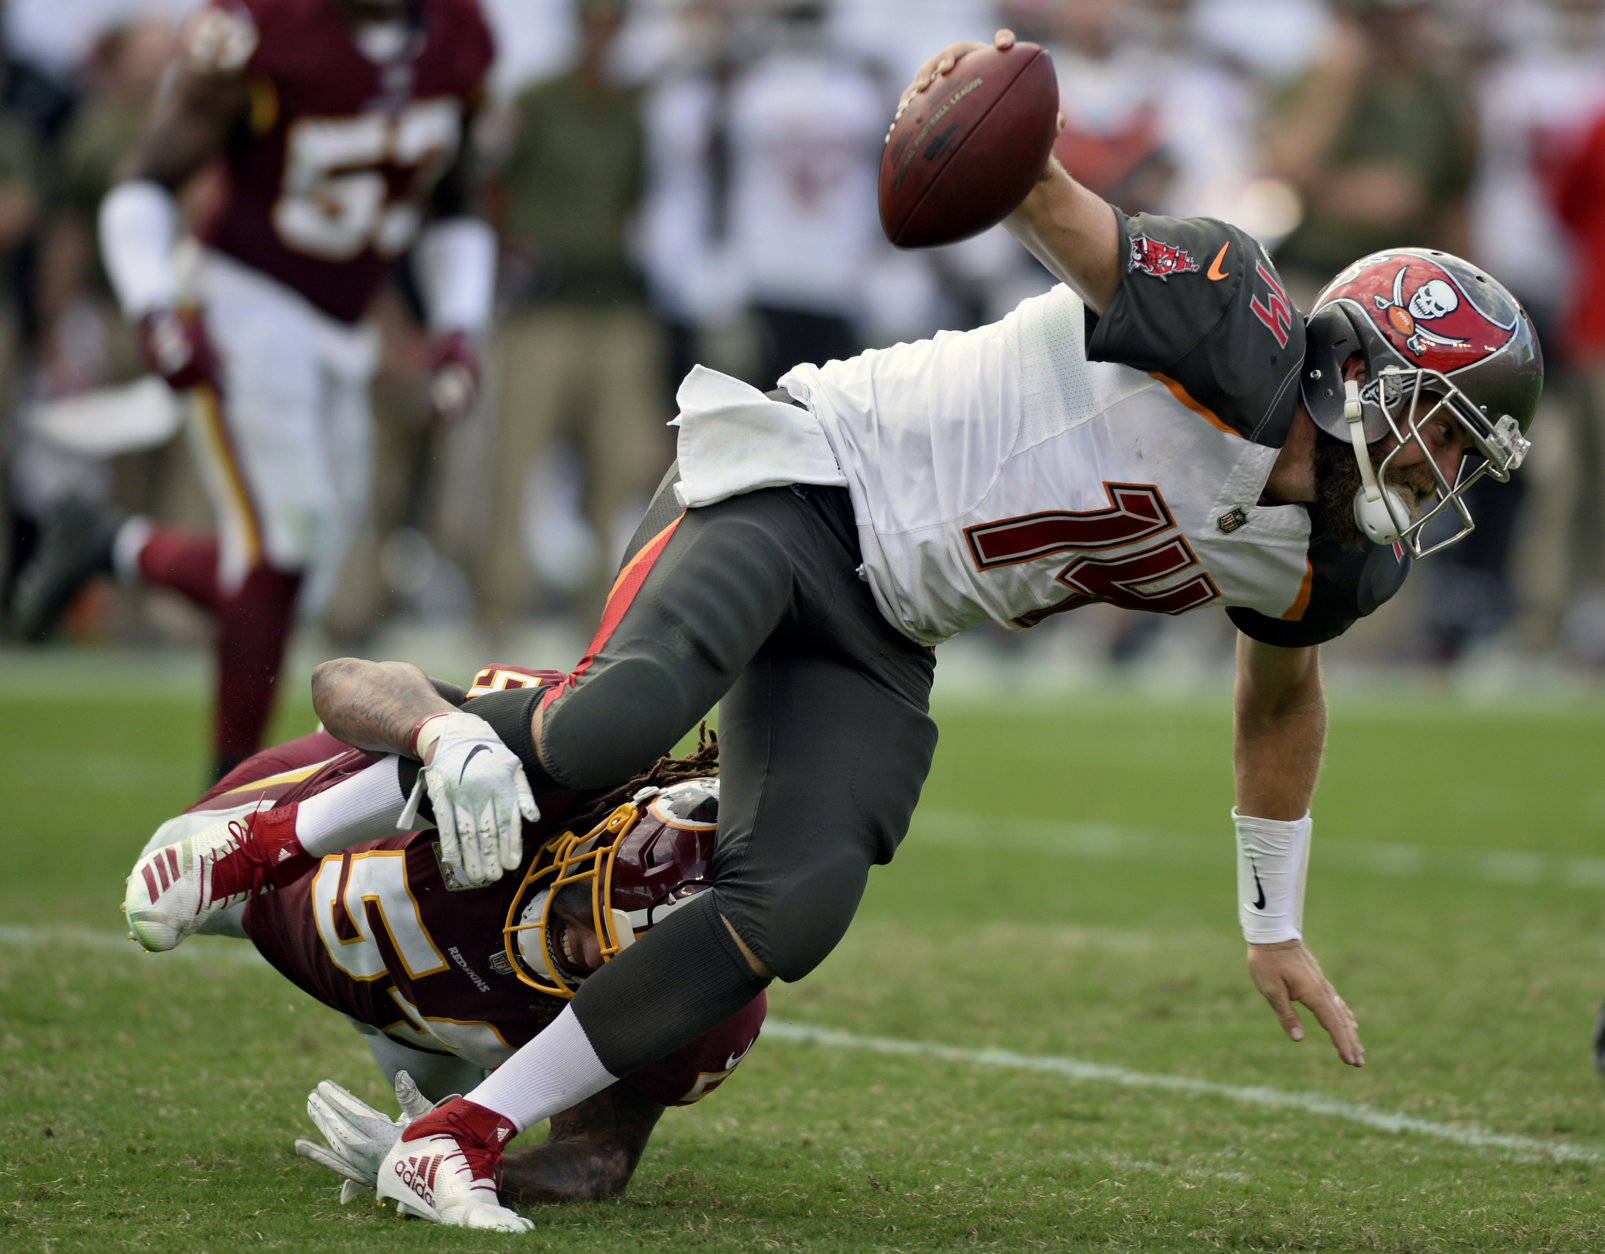 Tampa Bay Buccaneers quarterback Ryan Fitzpatrick (14) is tripped by Washington Redskins inside linebacker Mason Foster (54) during the second half of an NFL football game Sunday, Nov. 11, 2018, in Tampa, Fla. (AP Photo/Jason Behnken)